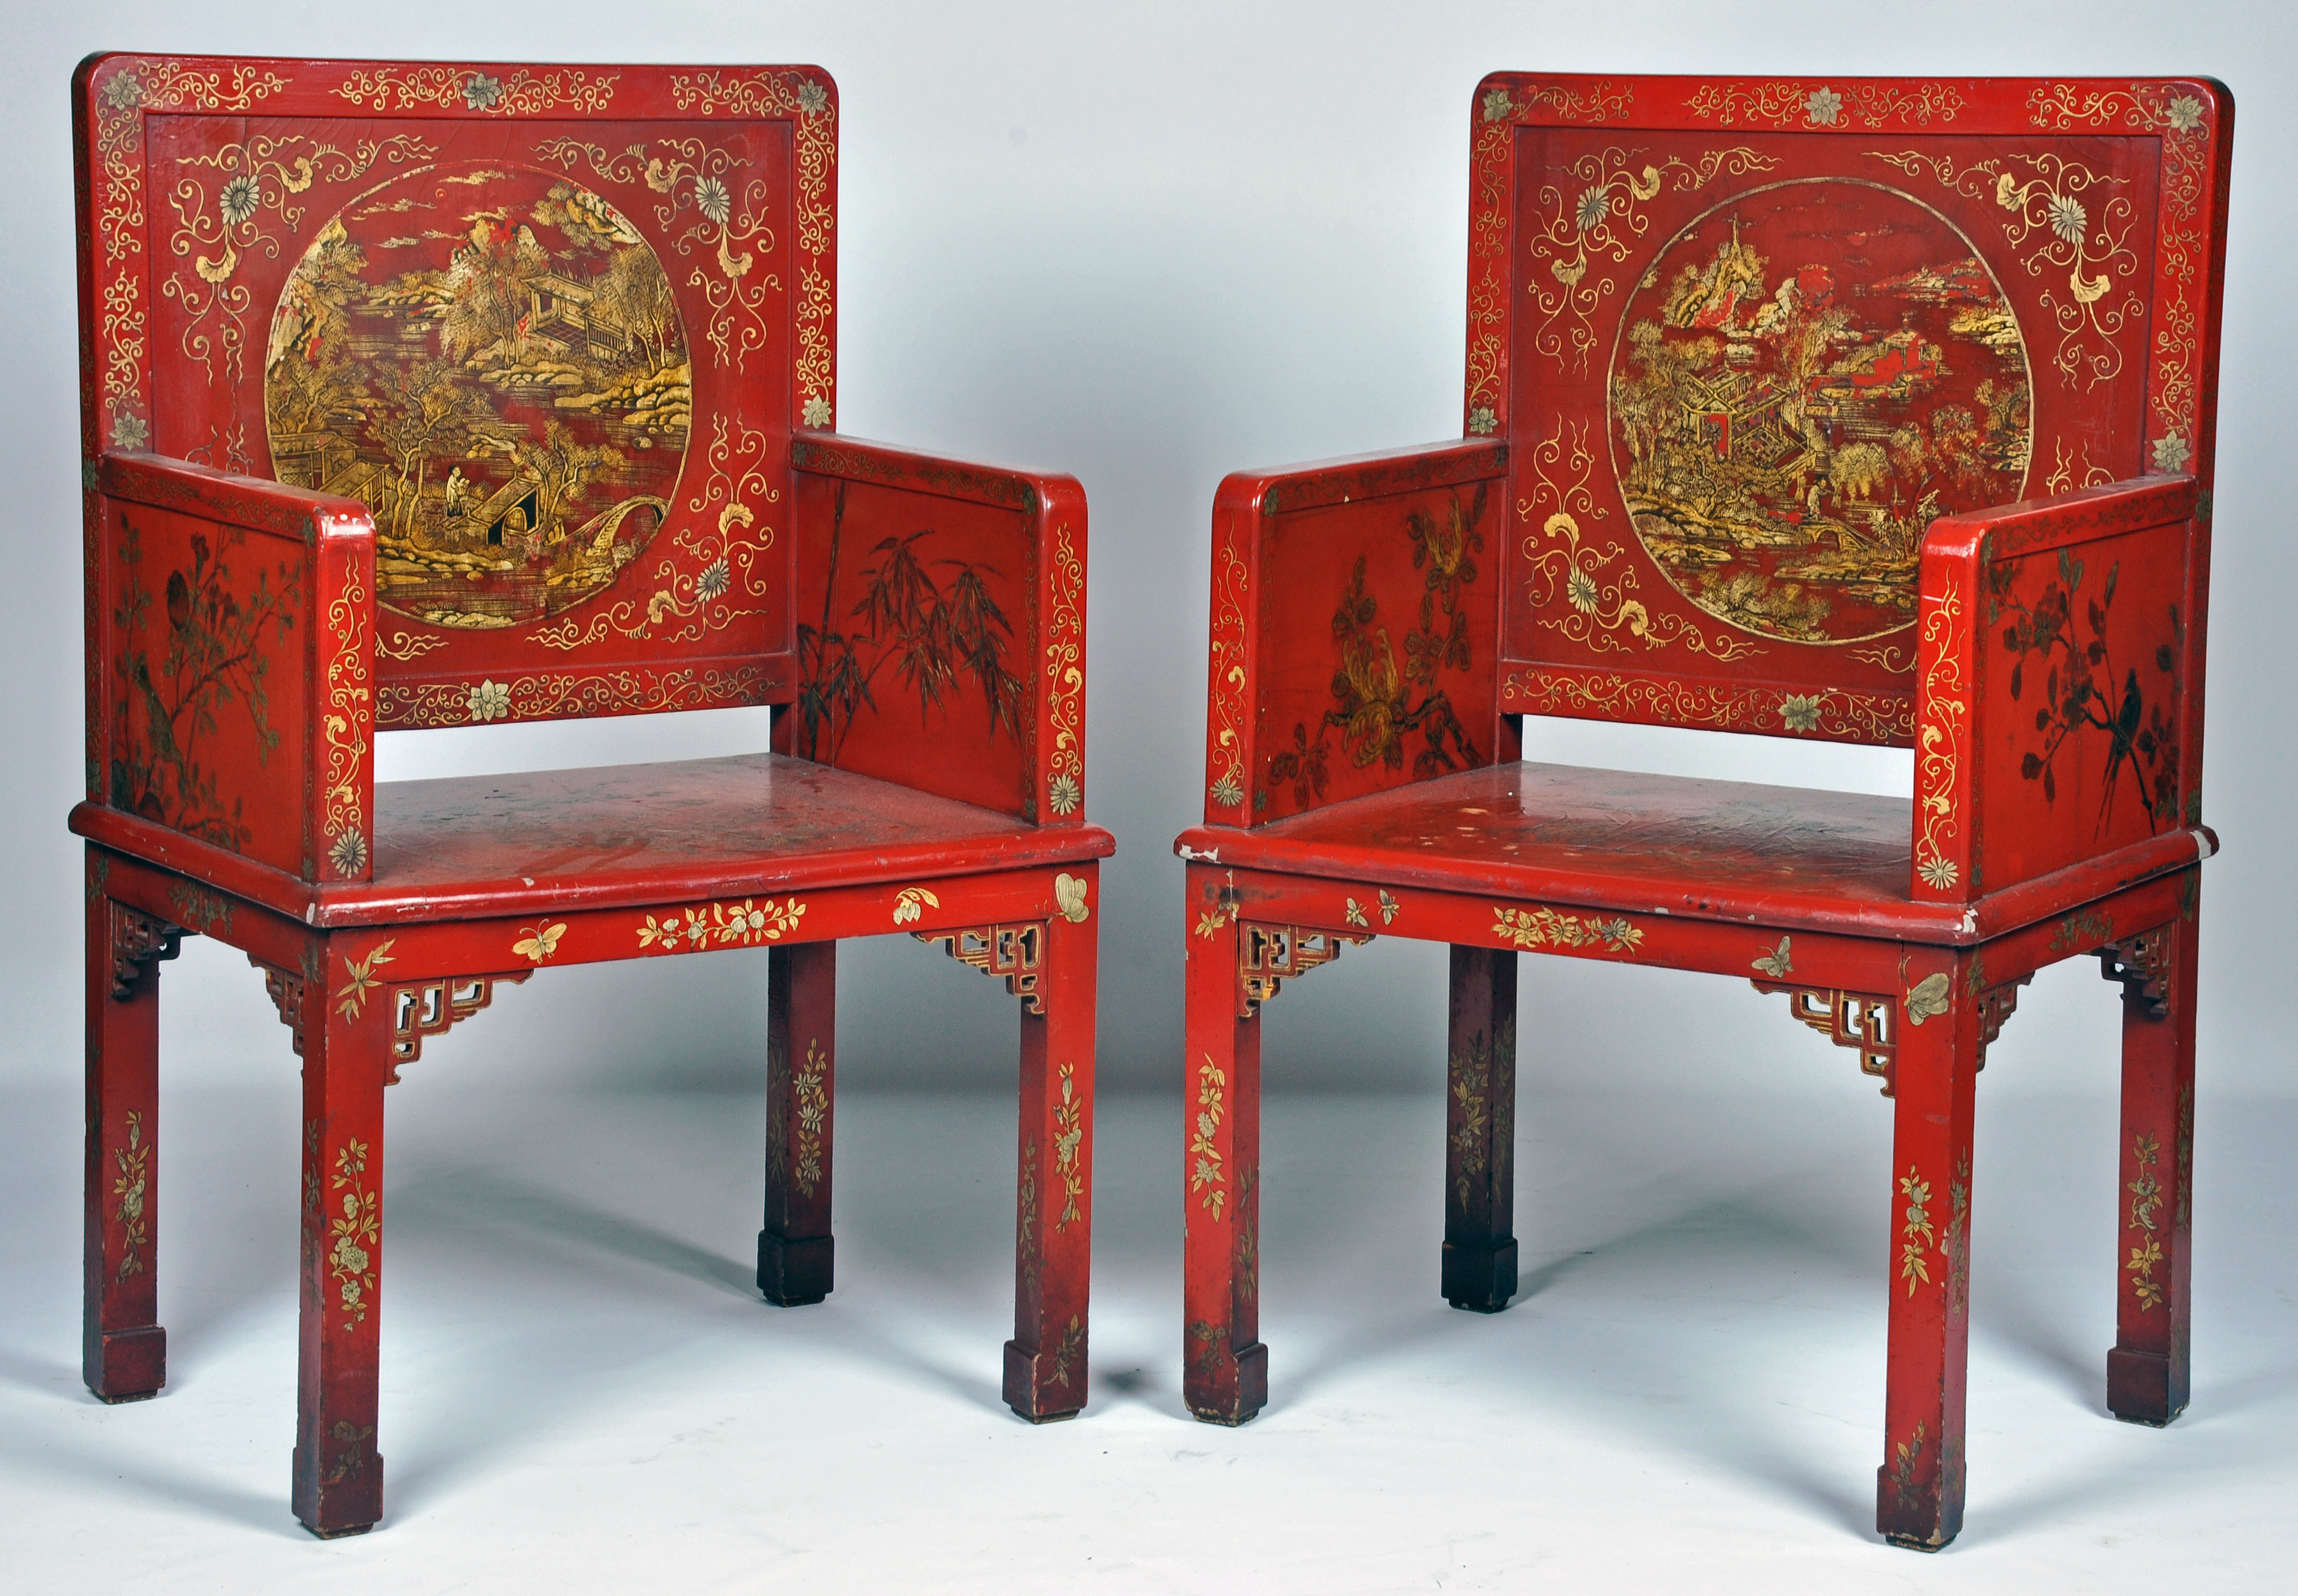 A Pair Of Chinese Parcel Gilt Decorated Red Lacquered Chairs